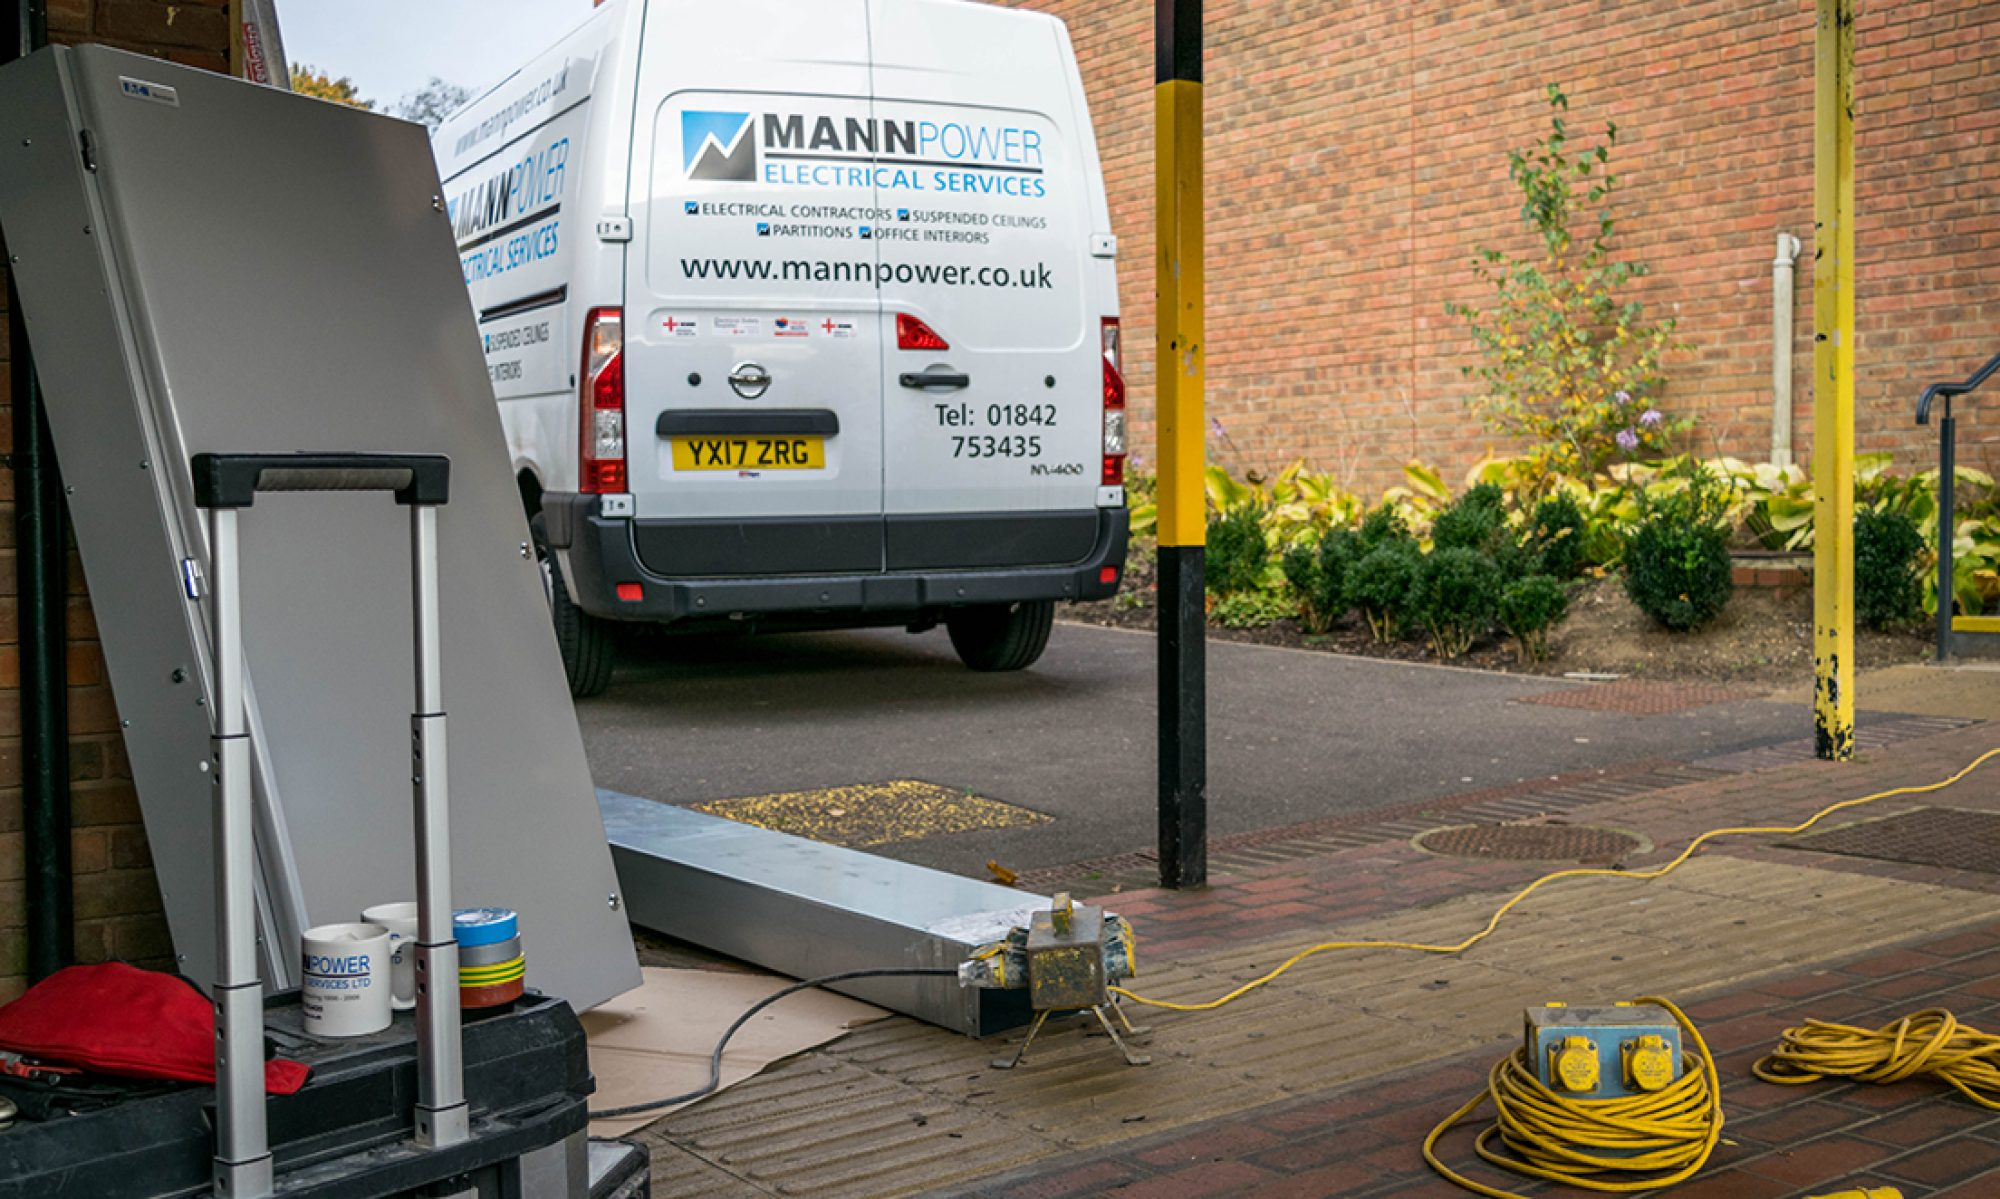 Mannpower Electrical Services